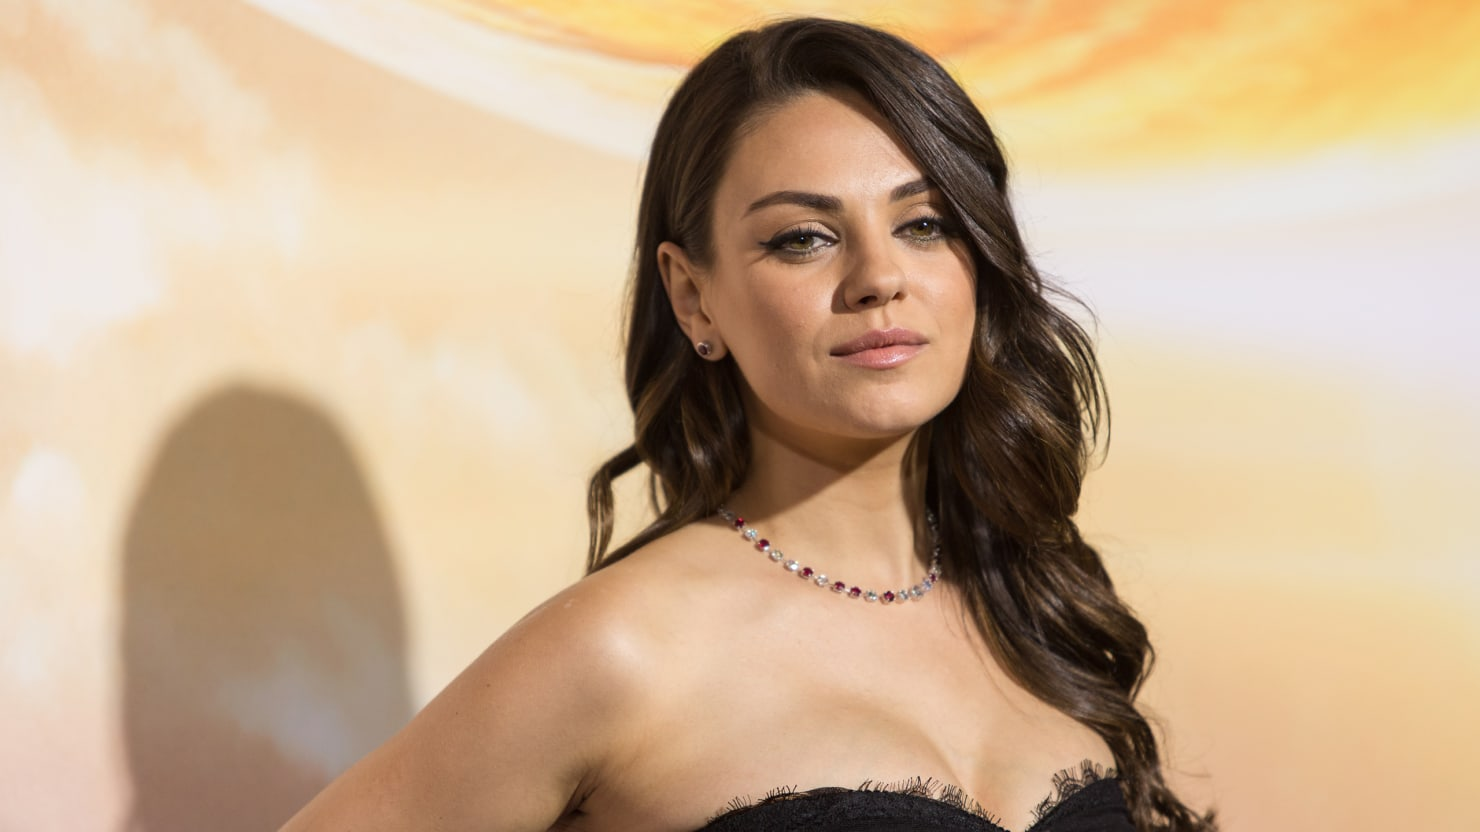 mila kunis calls out sexist hollywood producer in open letter paul